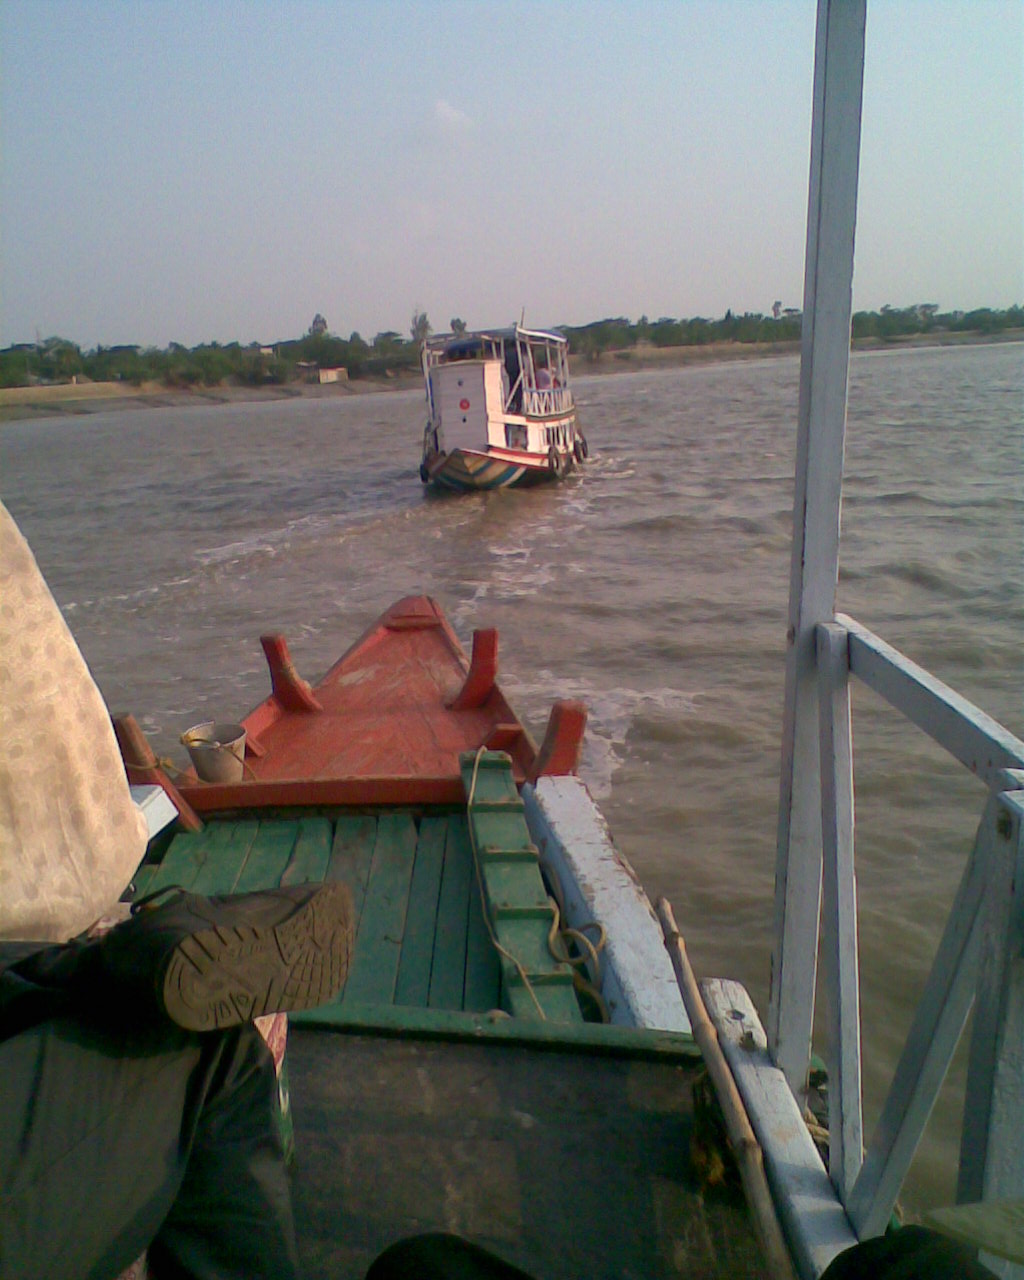 Tourism in the Sunderbans